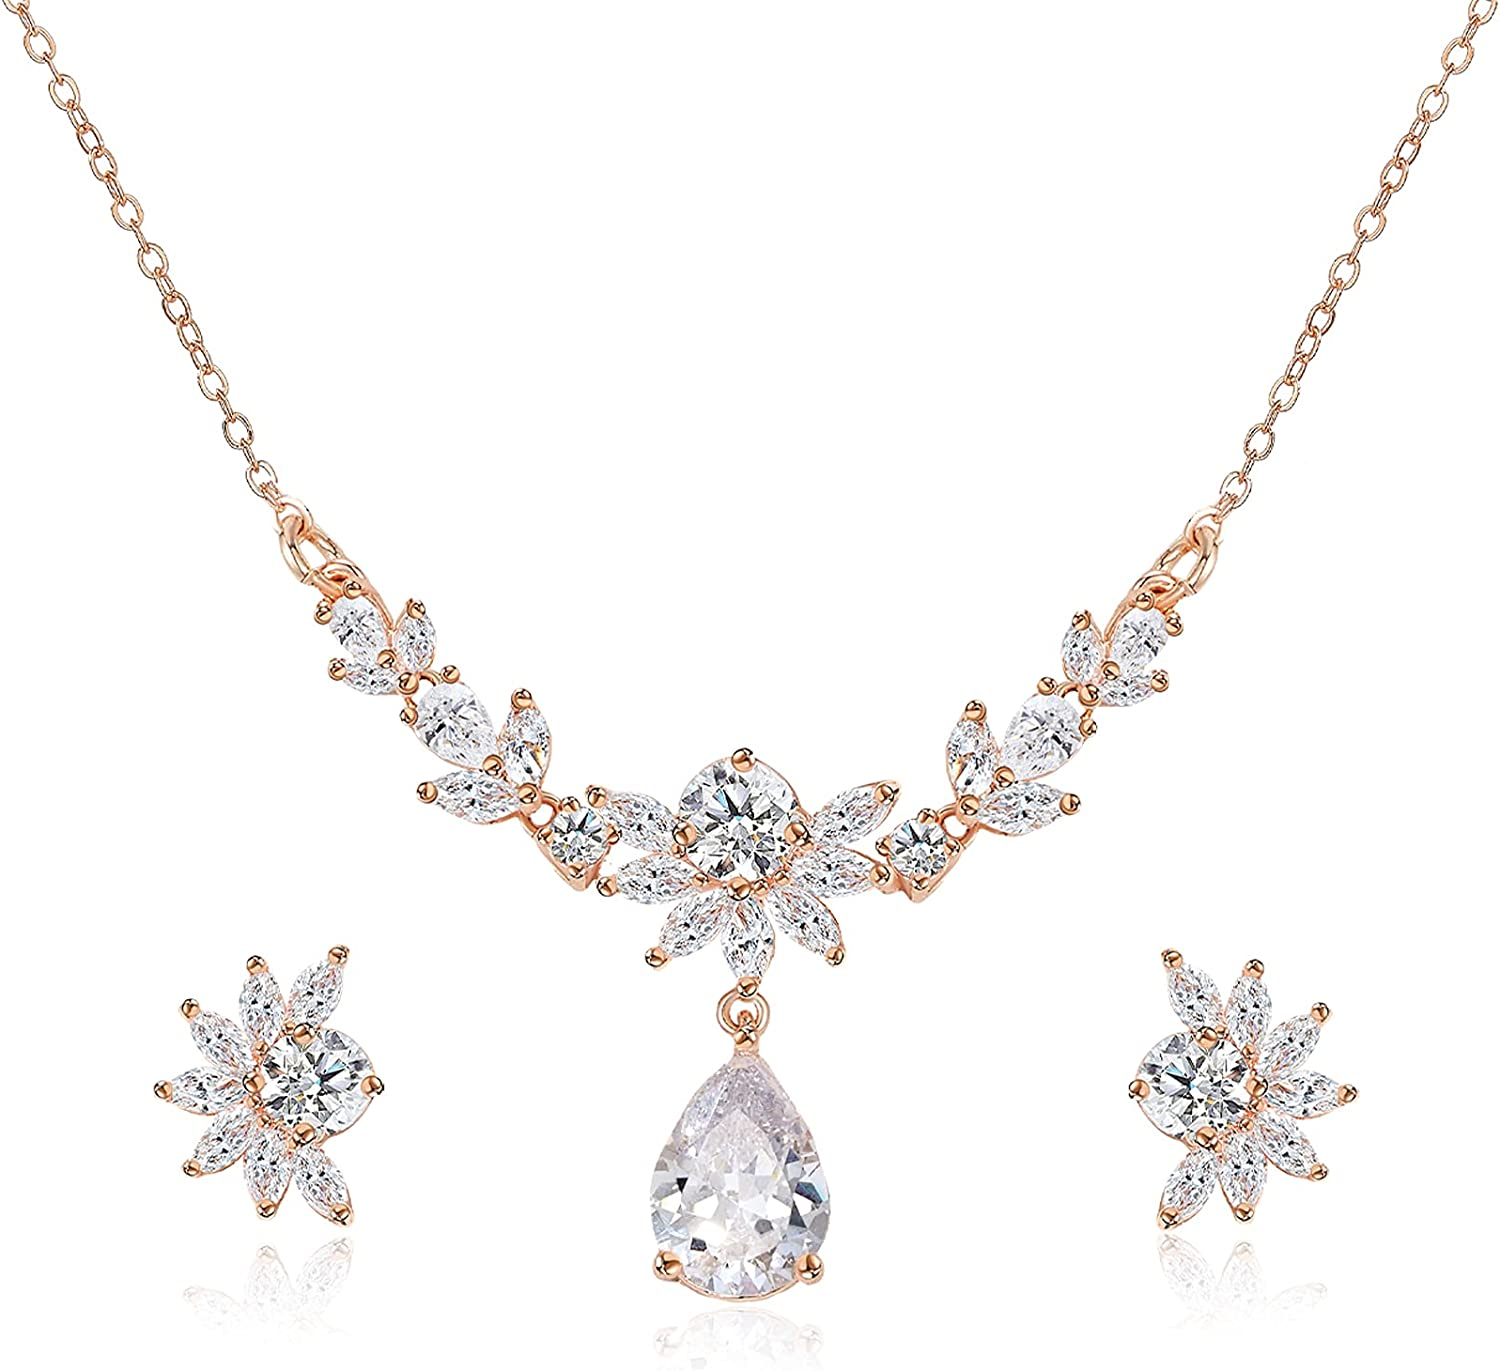 SWEETV Wedding Jewelry Sets for Brides,Bridal Teardrop Necklace Stud Earring Sets for Wedding Prom,Cubic Zirconia Marquise Jewelry Sets for Women